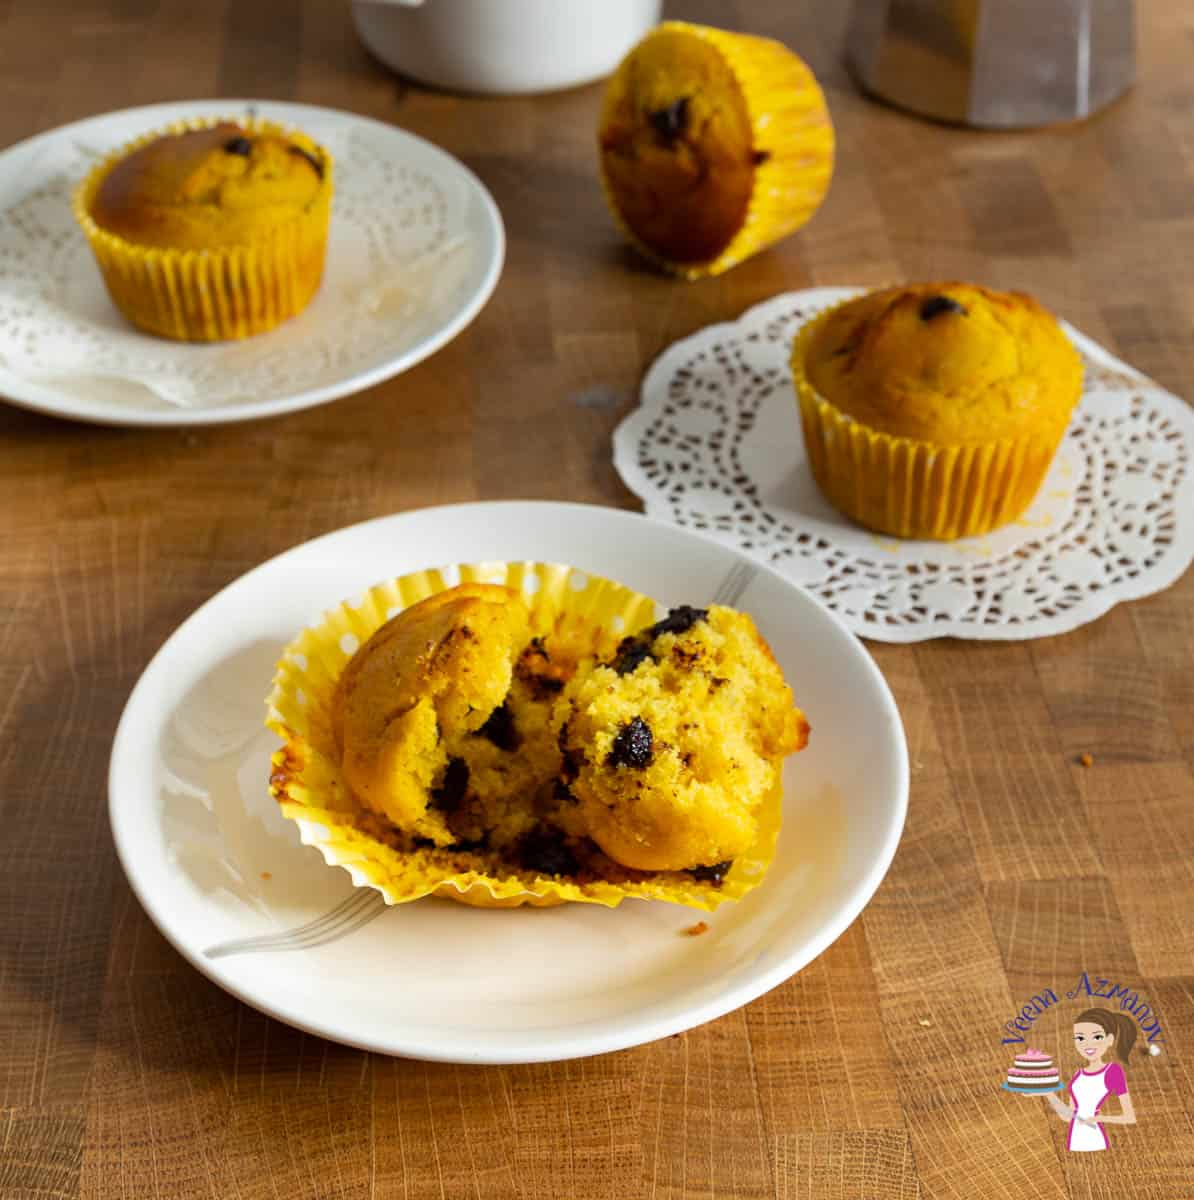 3 plates with chocolate chip muffins